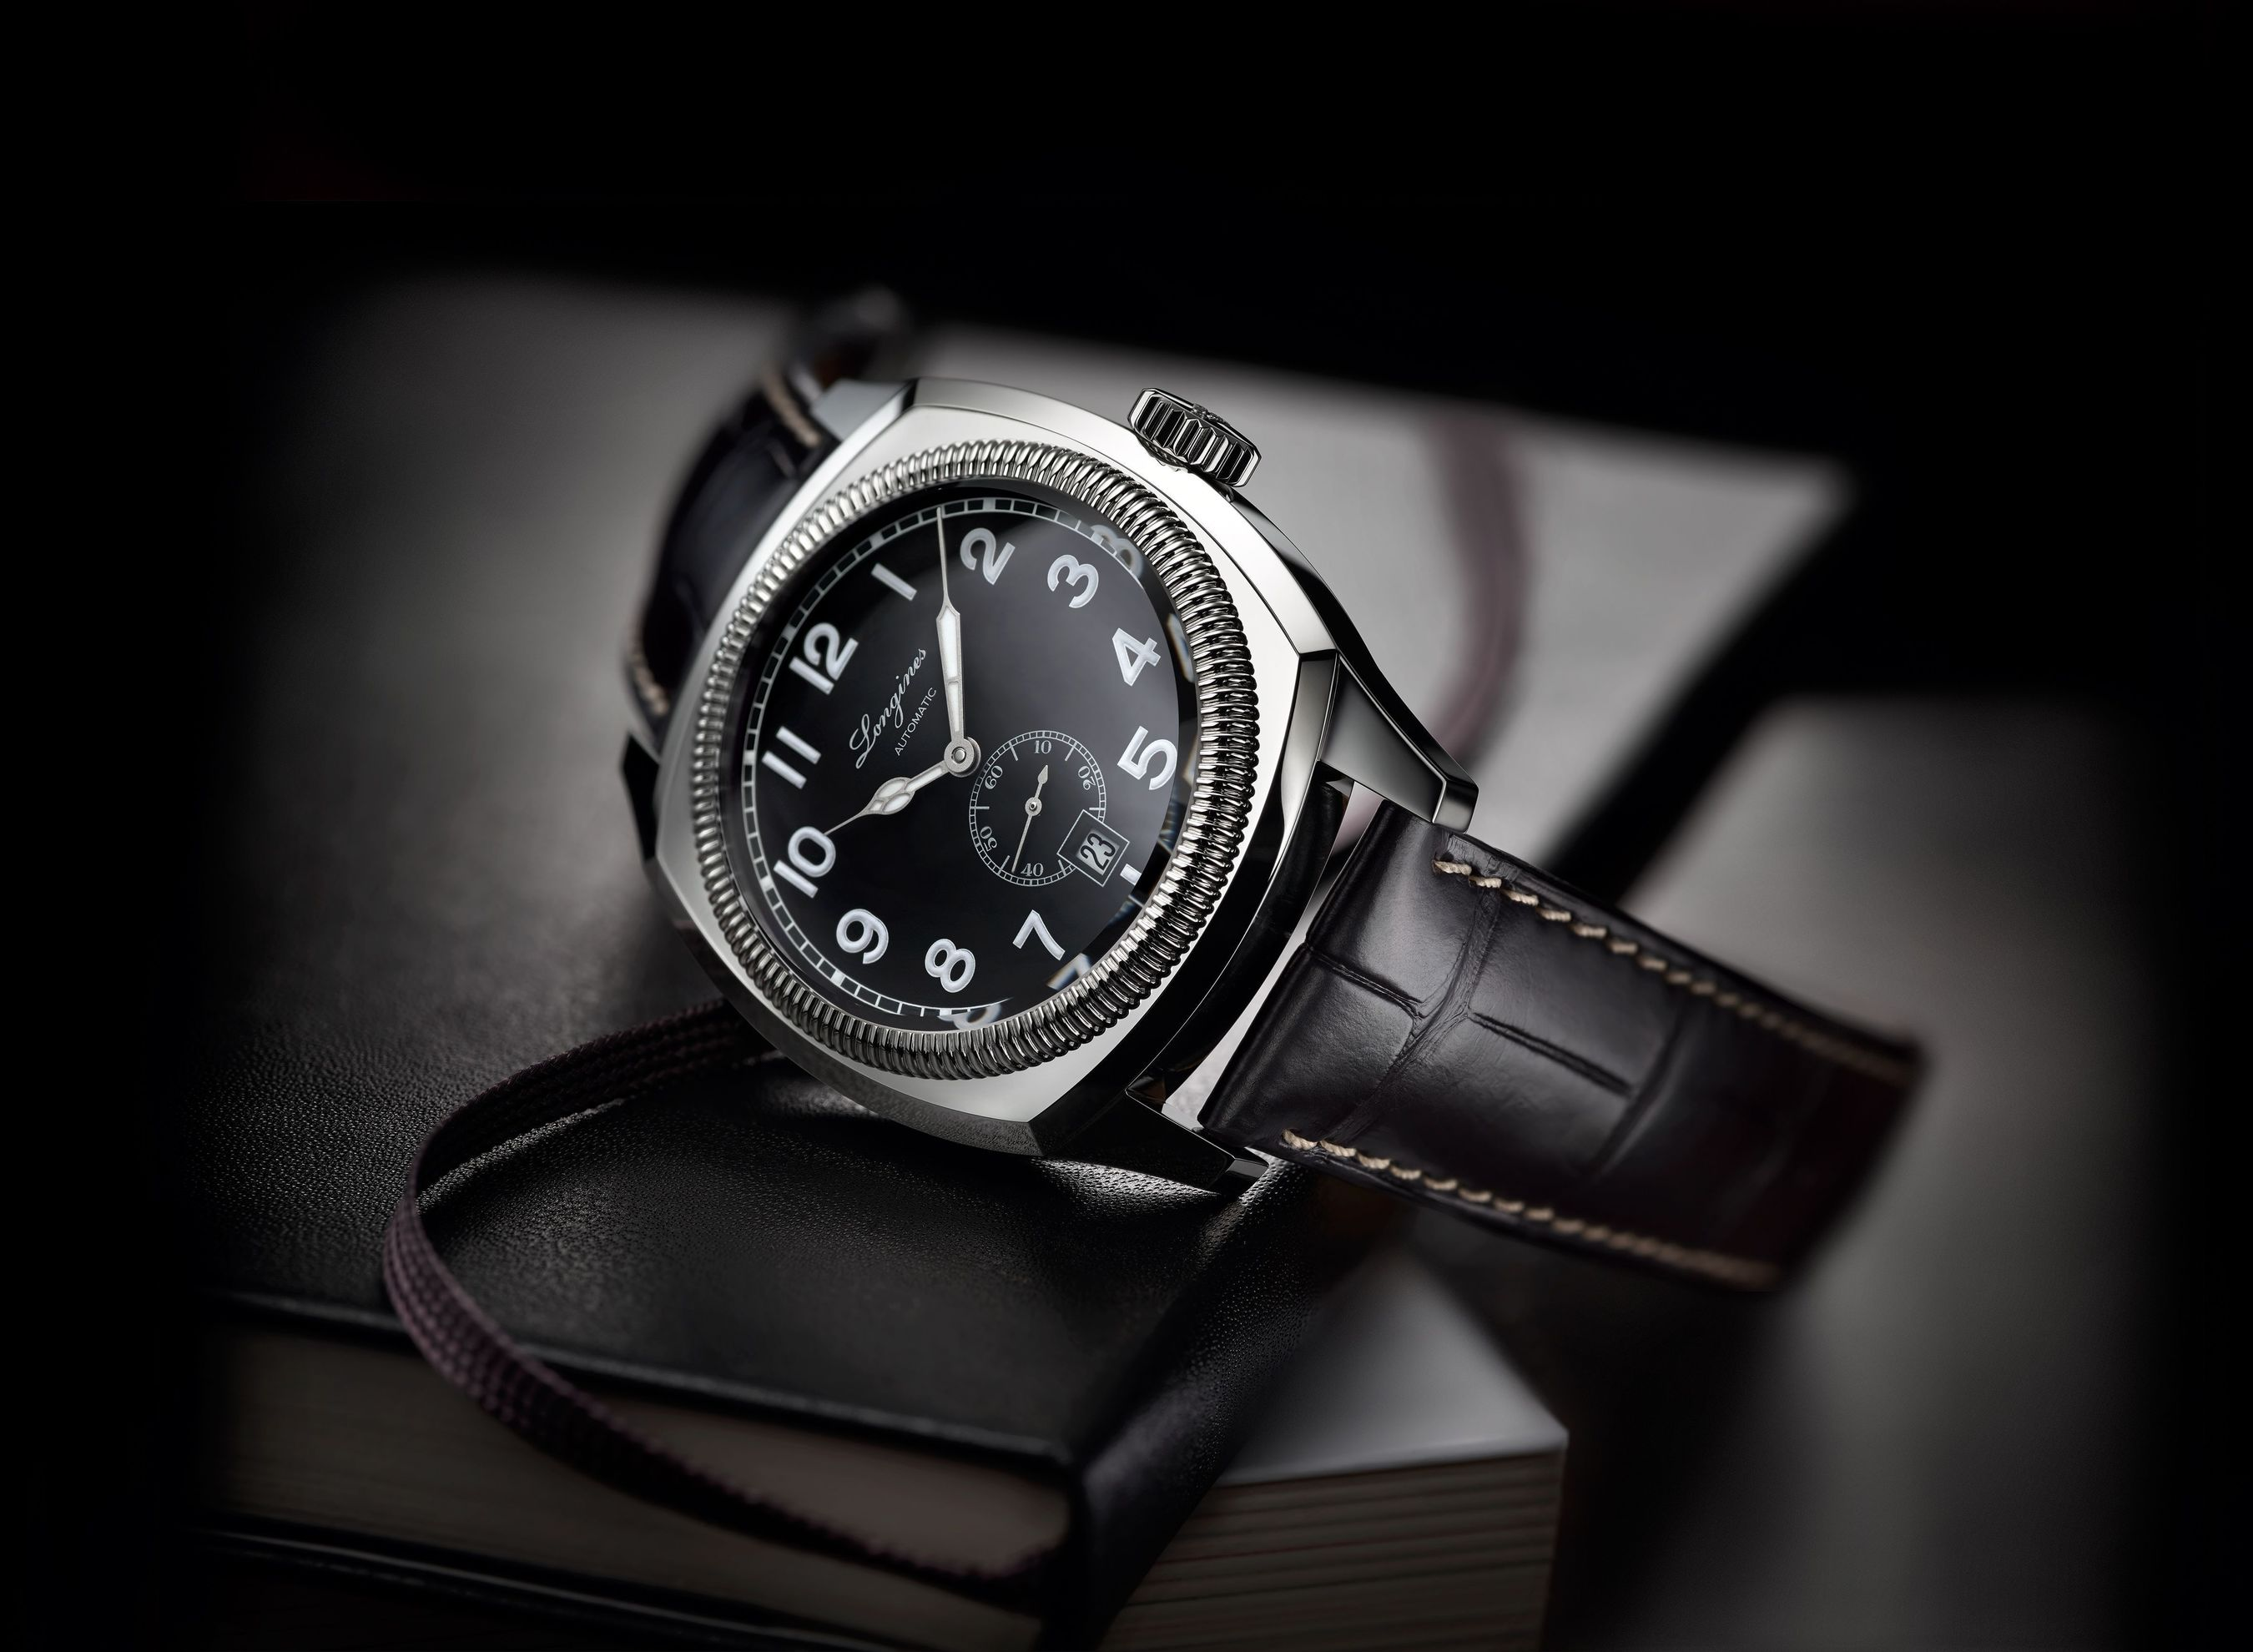 The Longines Heritage 1935 is based on a timepiece originally created for aviators but which went on to prove highly popular among the general public. Its cushion-shaped steel case has a diameter of 42 mm and houses the automatic calibre L615. The matt black dial displays white Arabic numerals with Super-LumiNova® as well as a small second and the date at 6 o'clock. The watch is fitted with a black alligator strap. (PRNewsFoto/Longines)